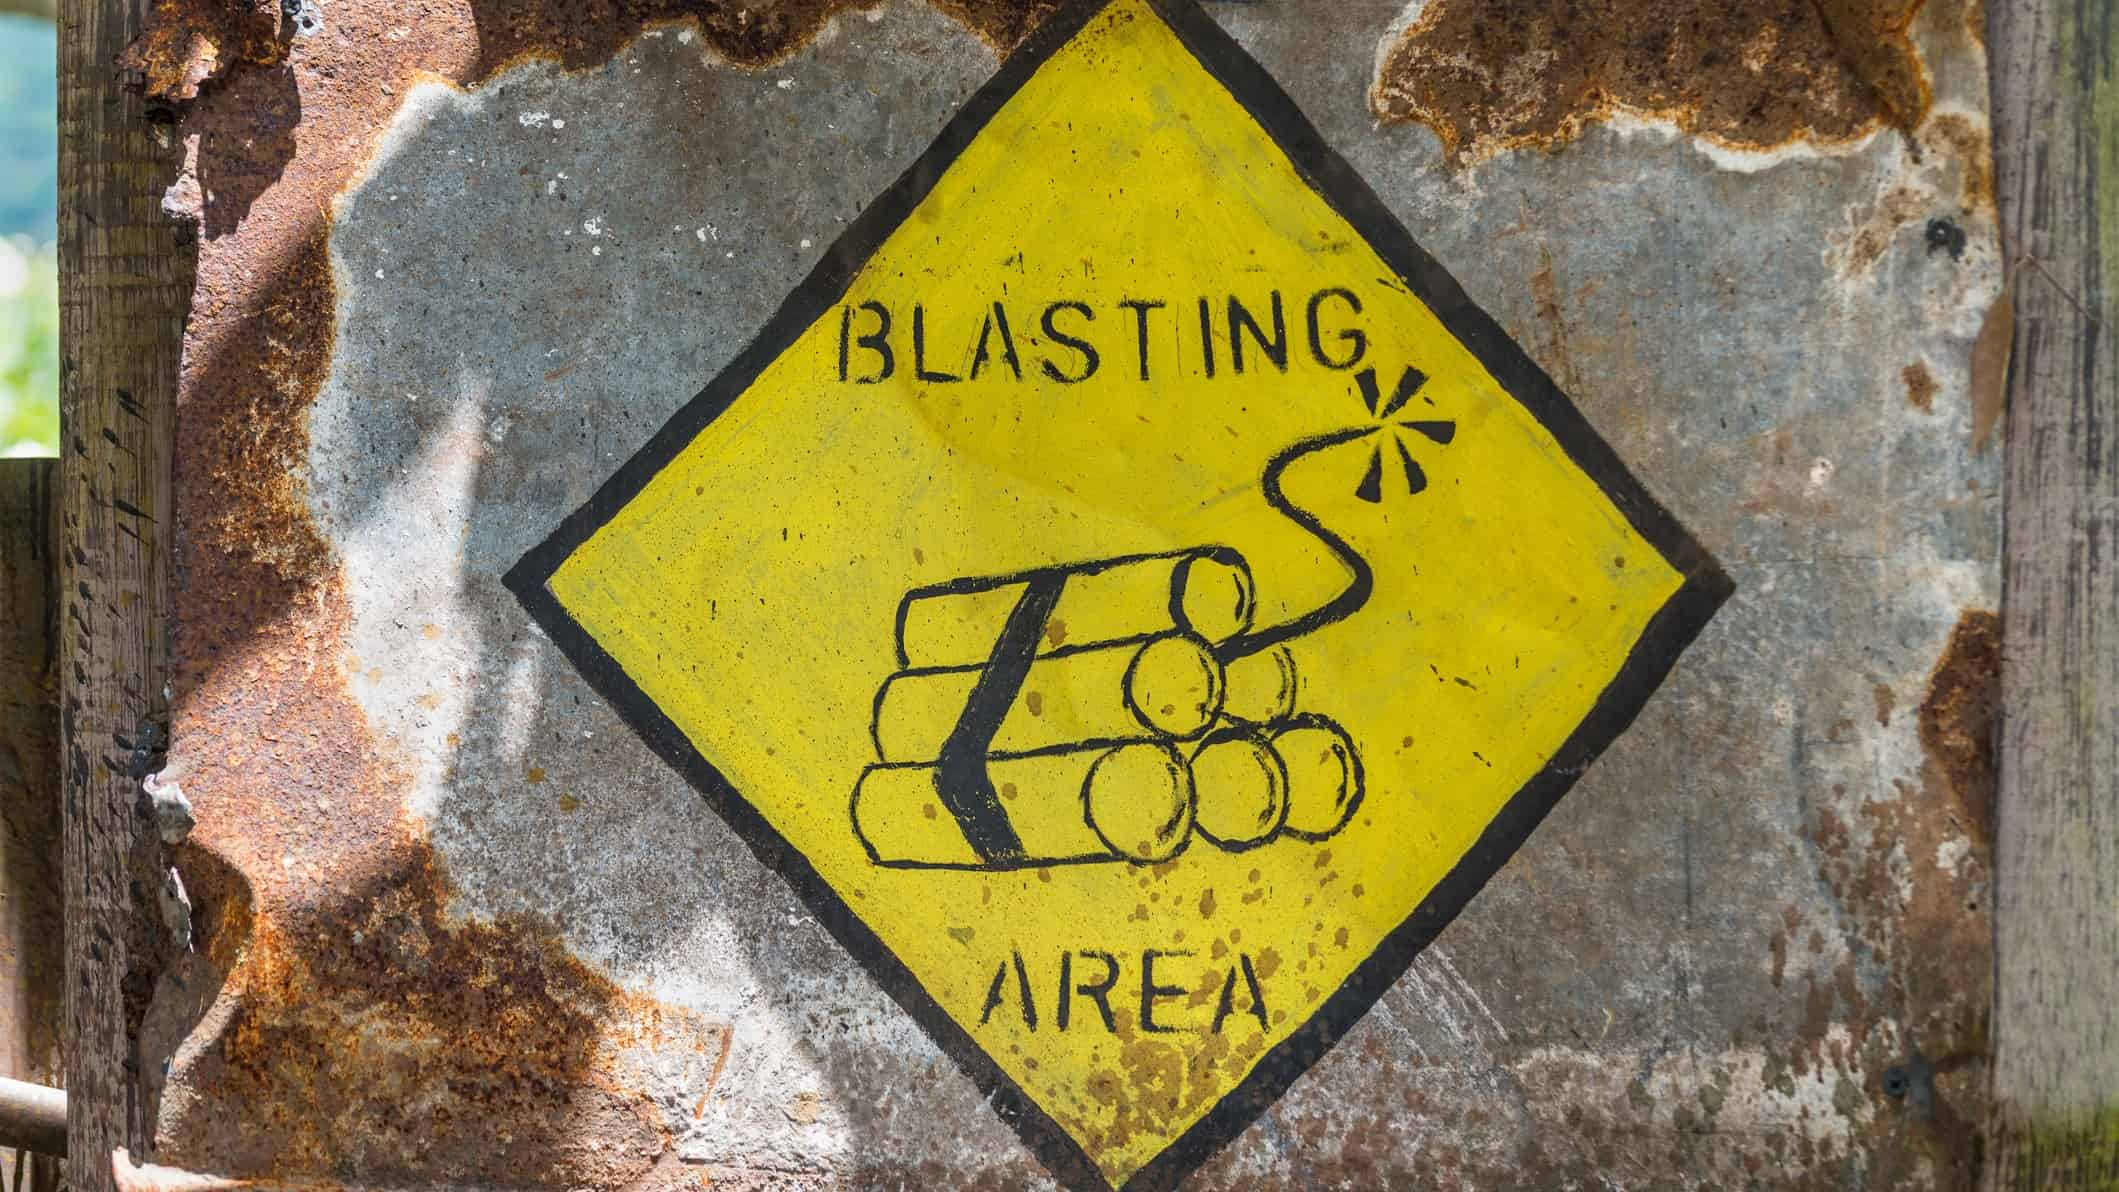 mining asx share price represented by yellow sign stating blasting area downgrade